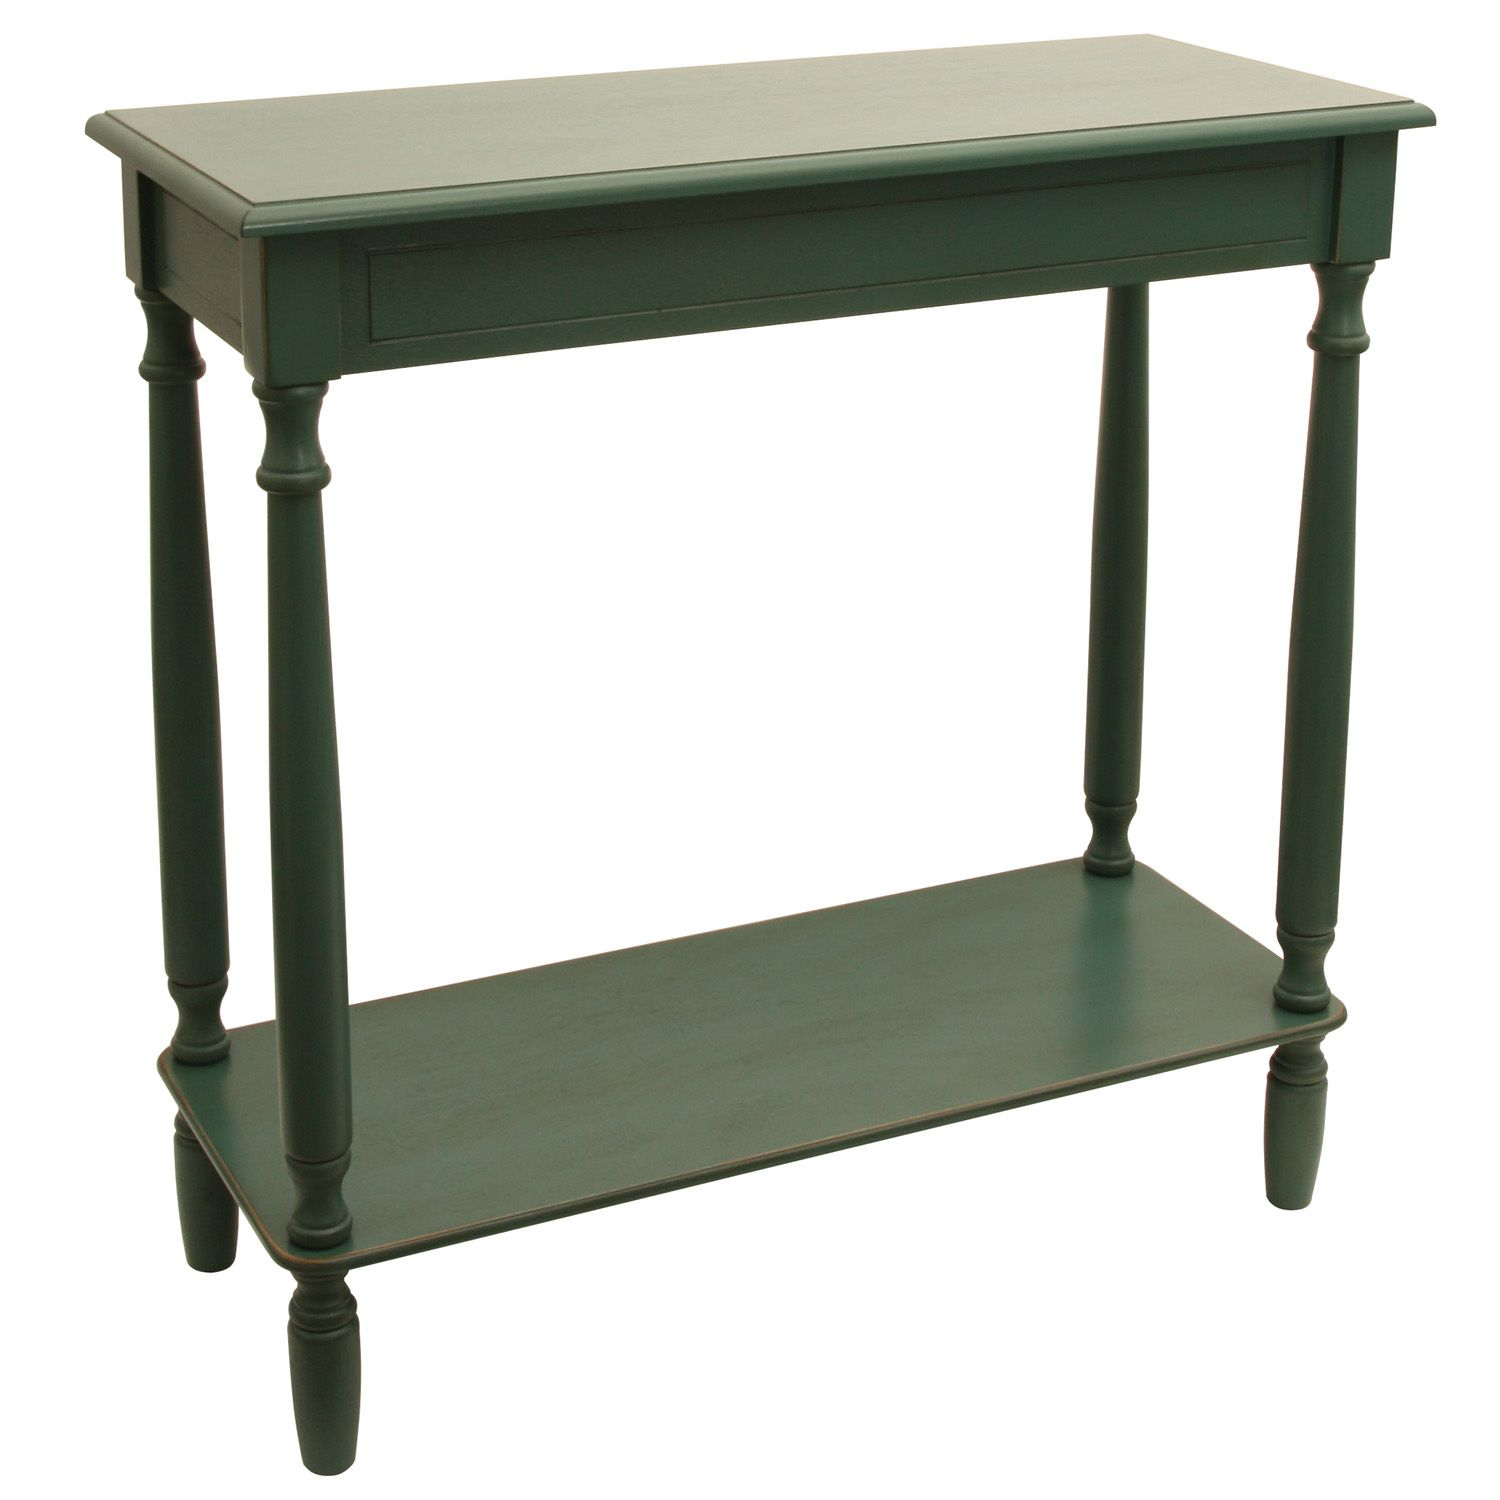 Decor Therapy Simplify Rectangle Console Table. Antique White Antique Teal